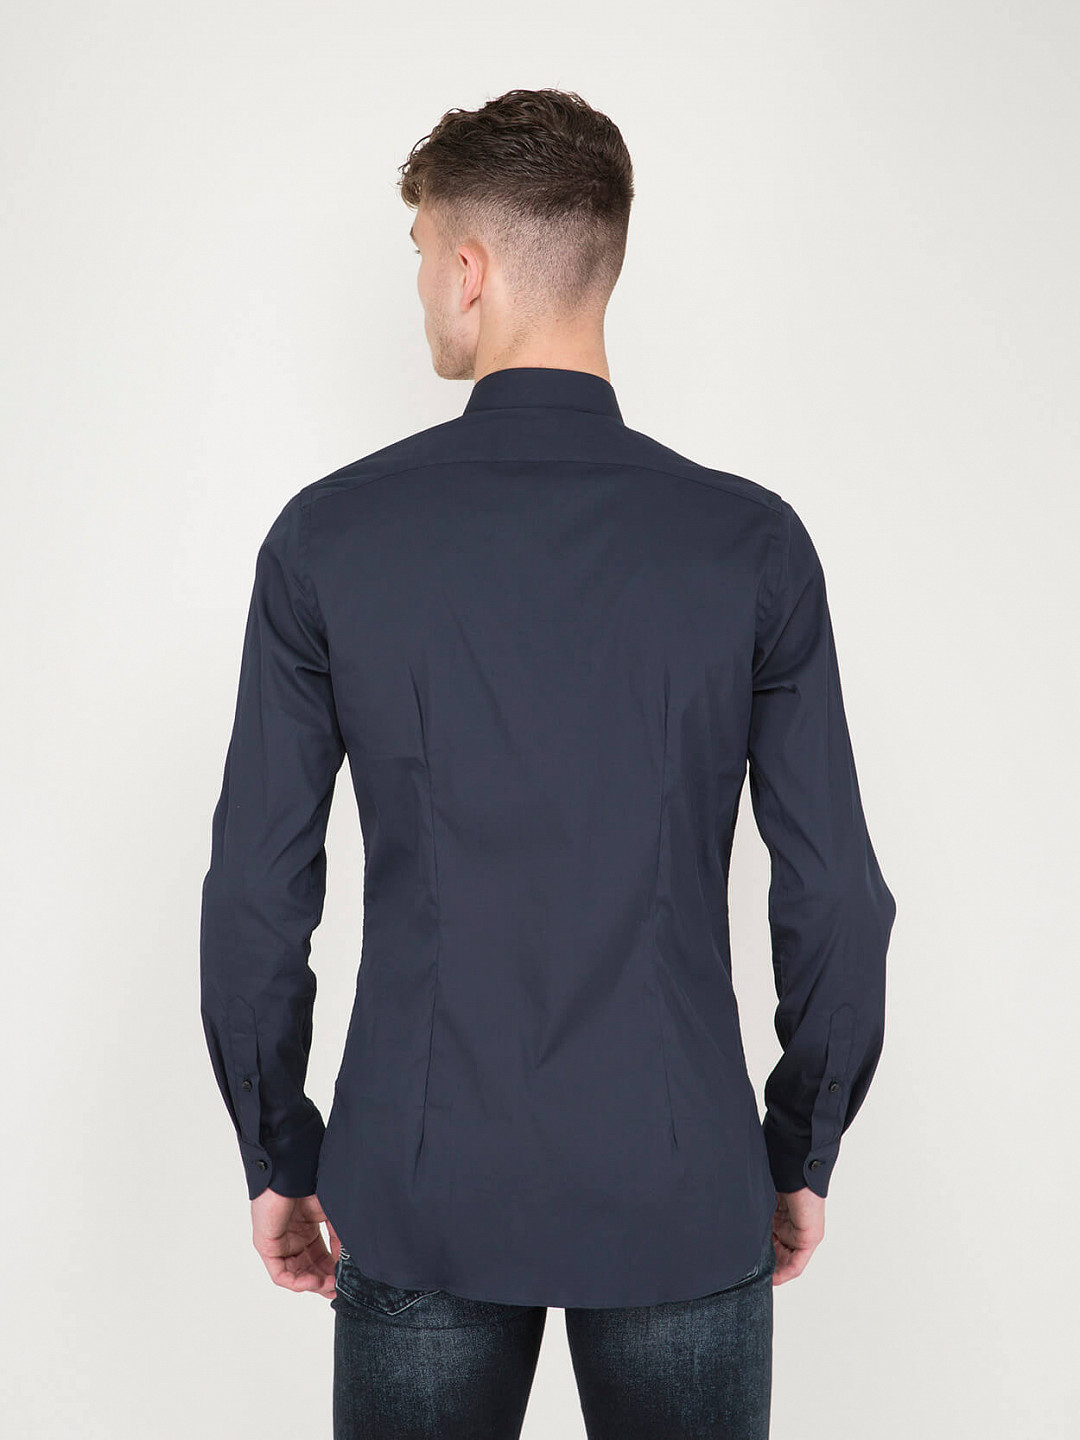 Business Tailor Fit Stretch Shirt navy